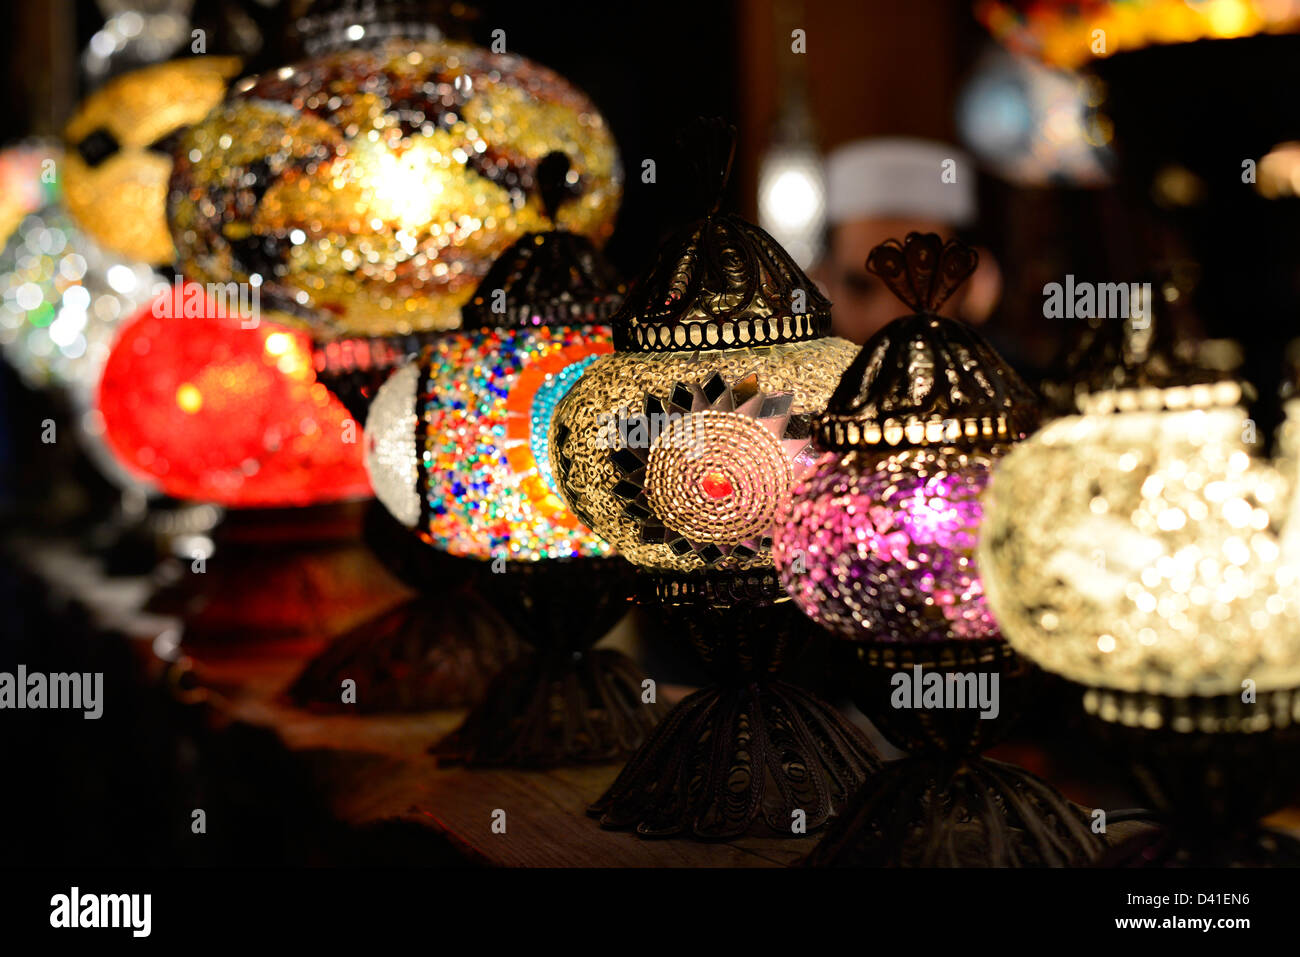 Turkish style colored hanging lights with a teardrop design of colorful glass mosaics. Stock Photo